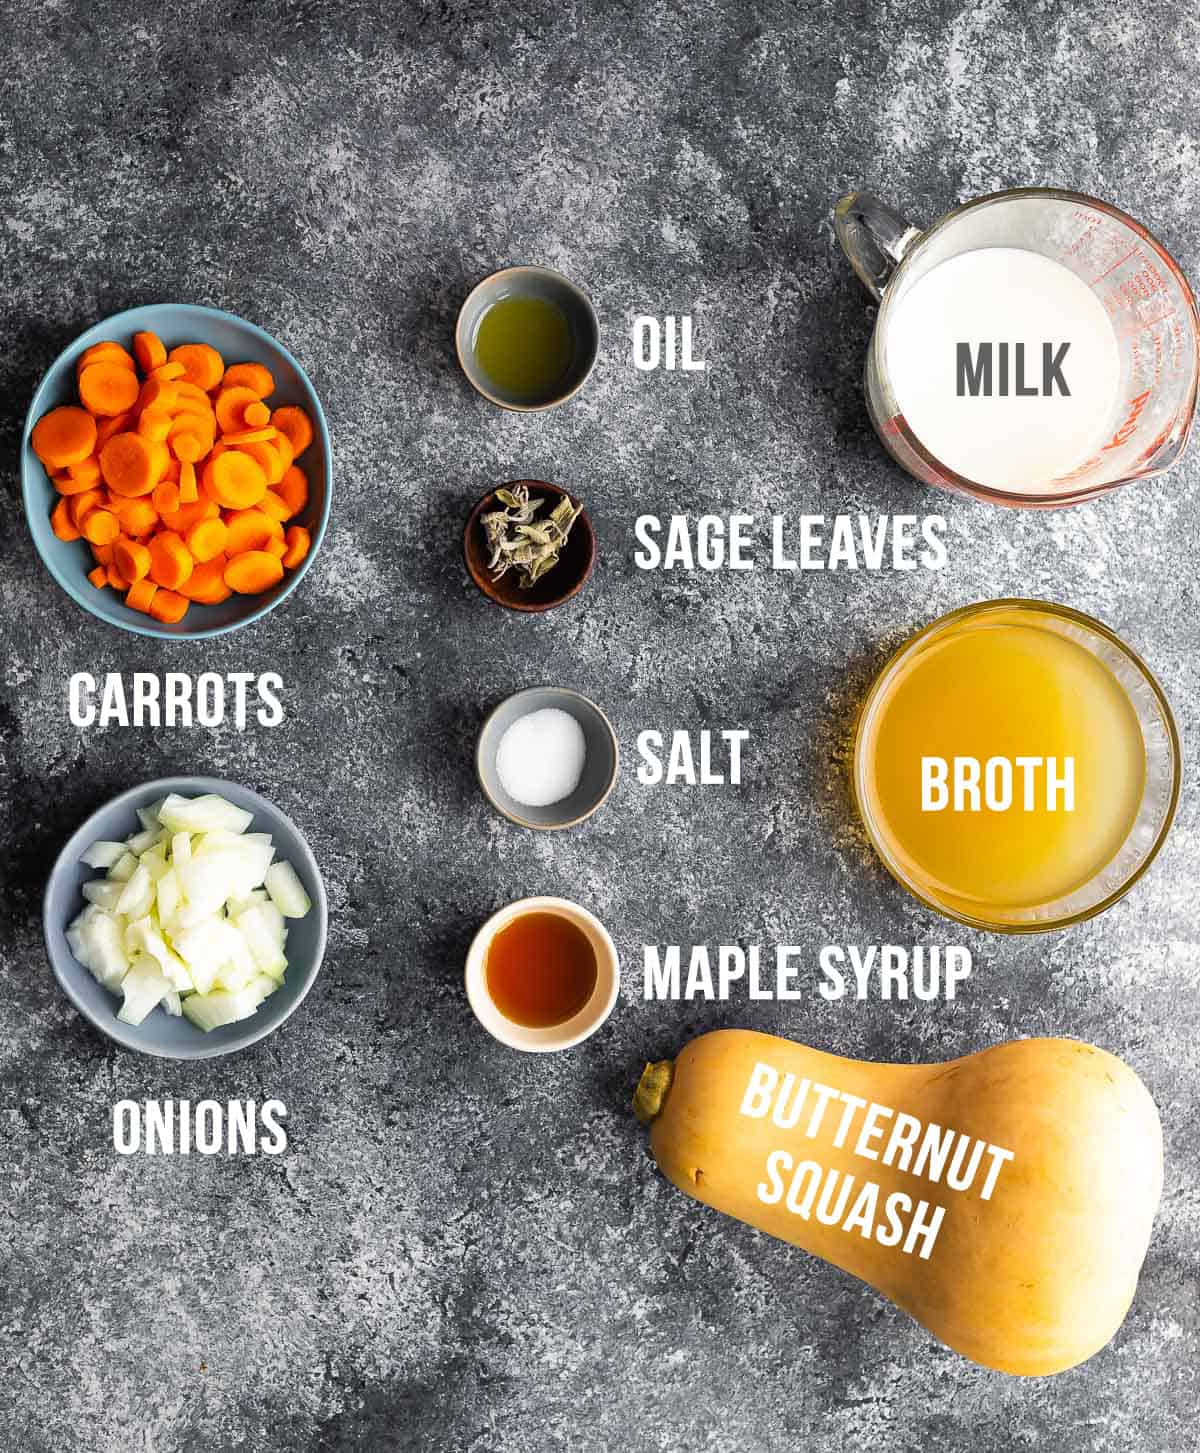 overhead view of ingredients required to make butternut squash soup